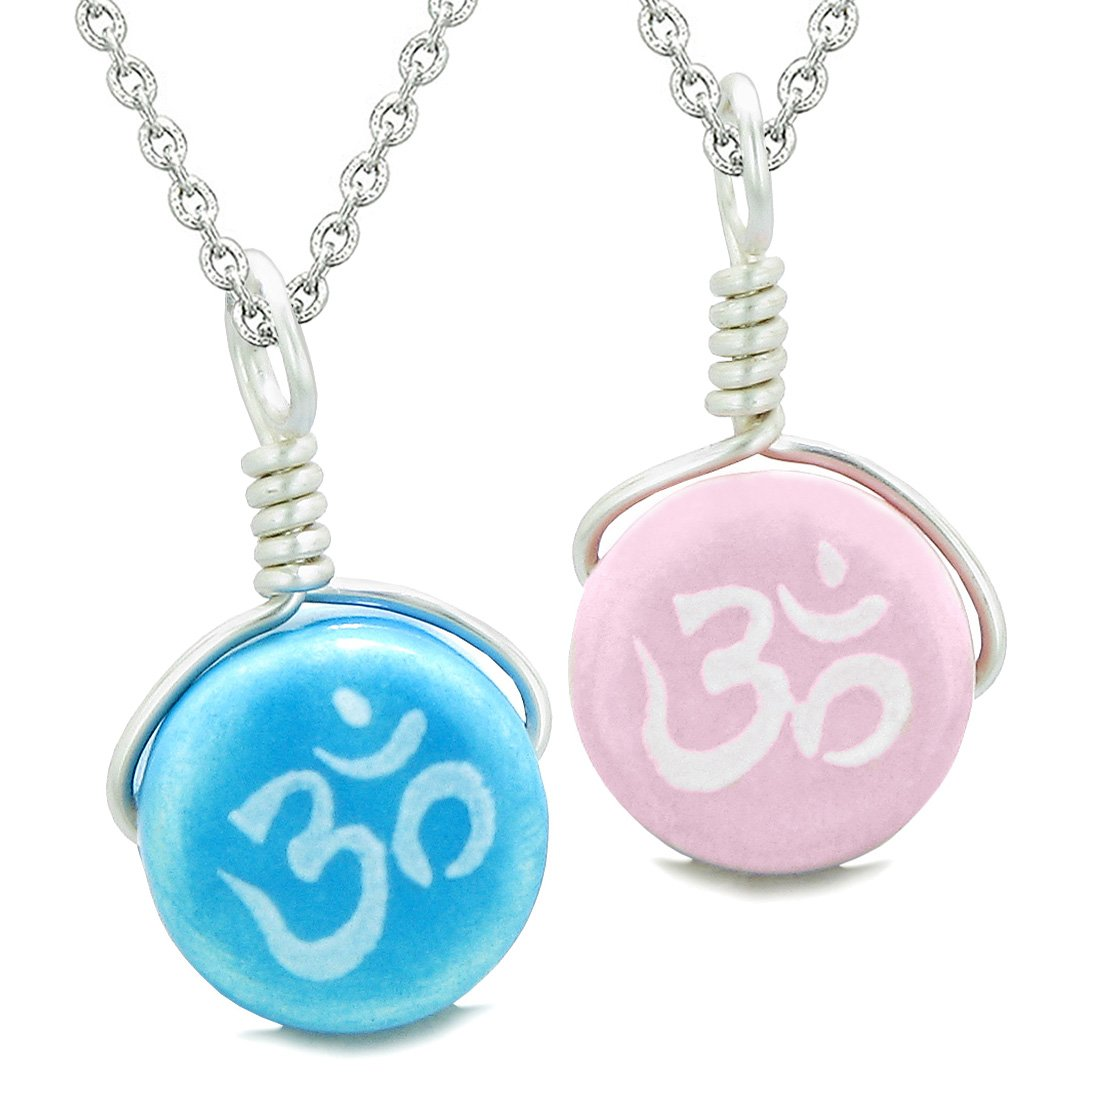 Love Couples or Best Friends Set Cute Ceramic Tibetan Aqua Pink OM Lucky Charm Amulet Pendant Necklaces